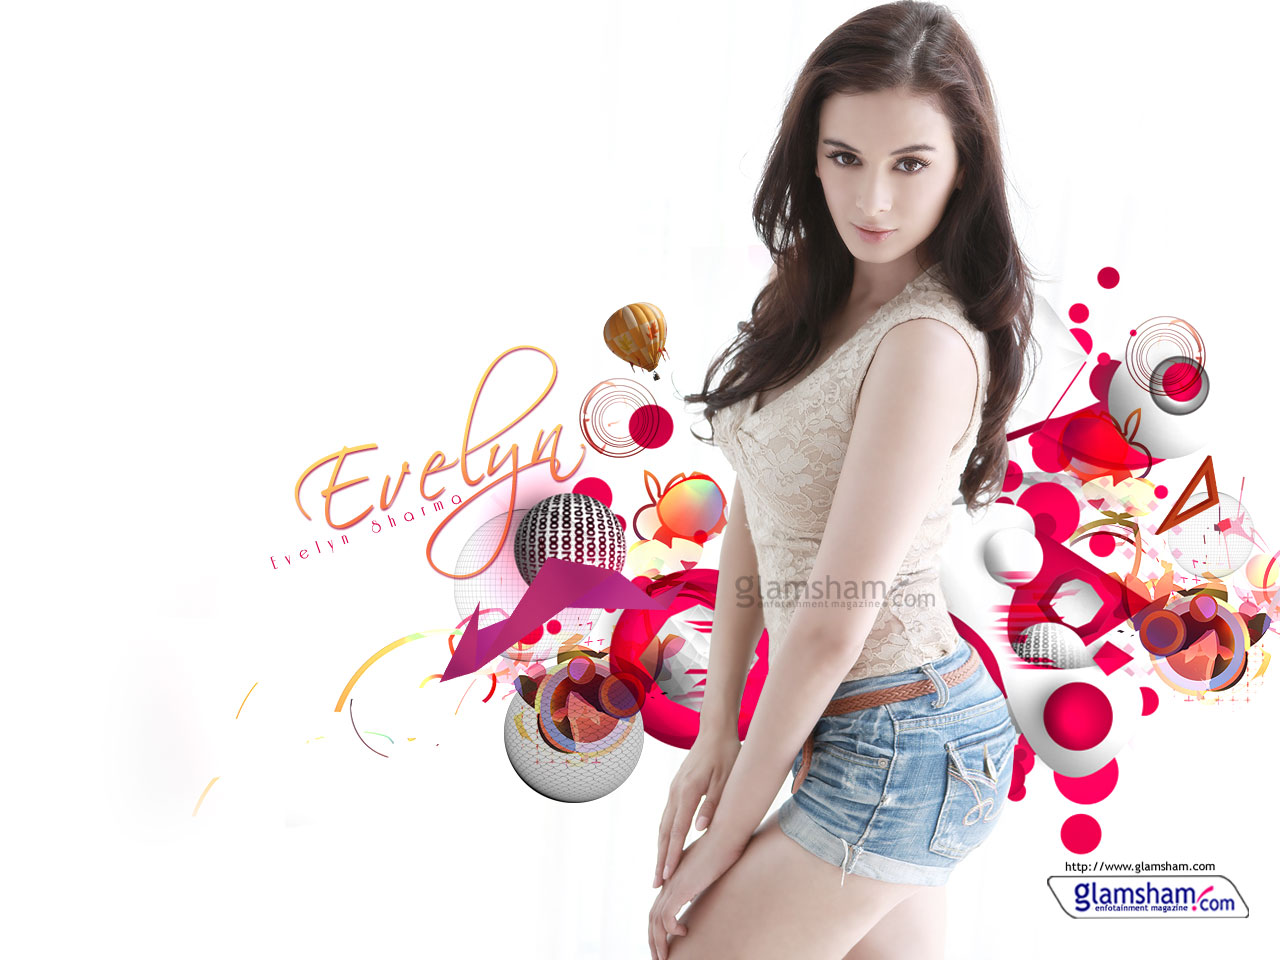 1280x960 - Evelyn Sharma Wallpapers 15